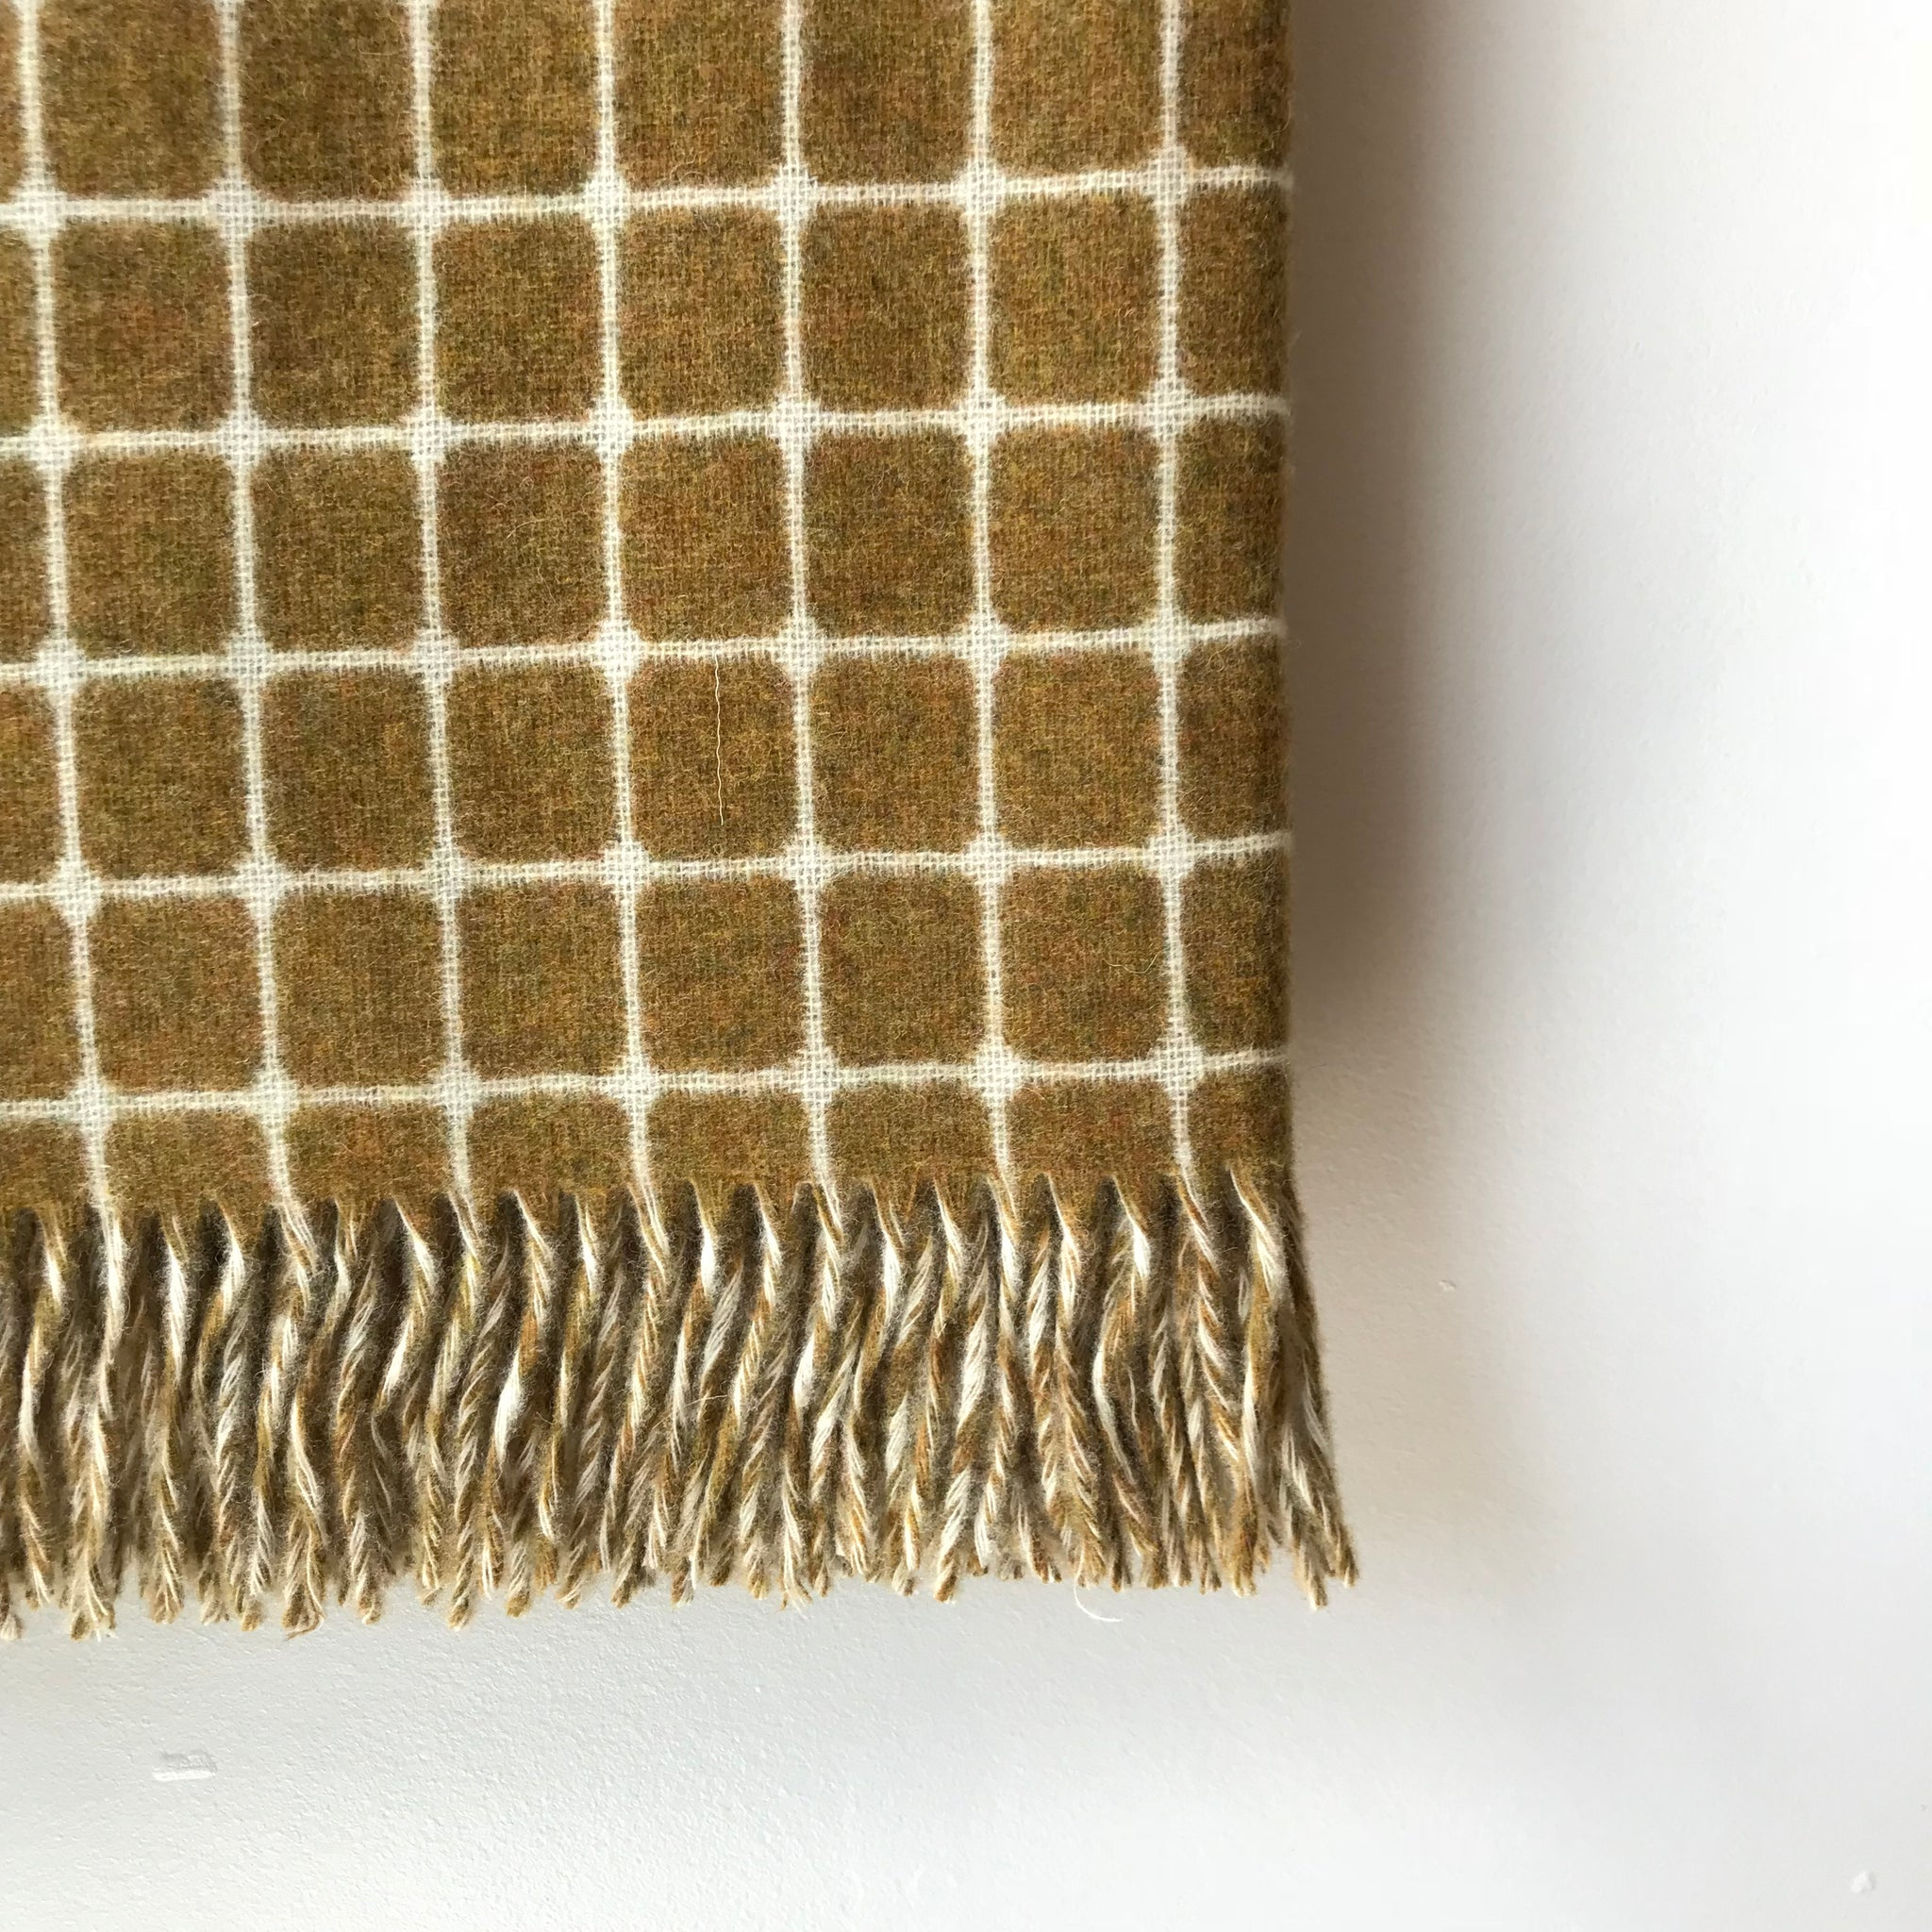 Athens Gold Wool Throw by Moons UK - Upstate MN